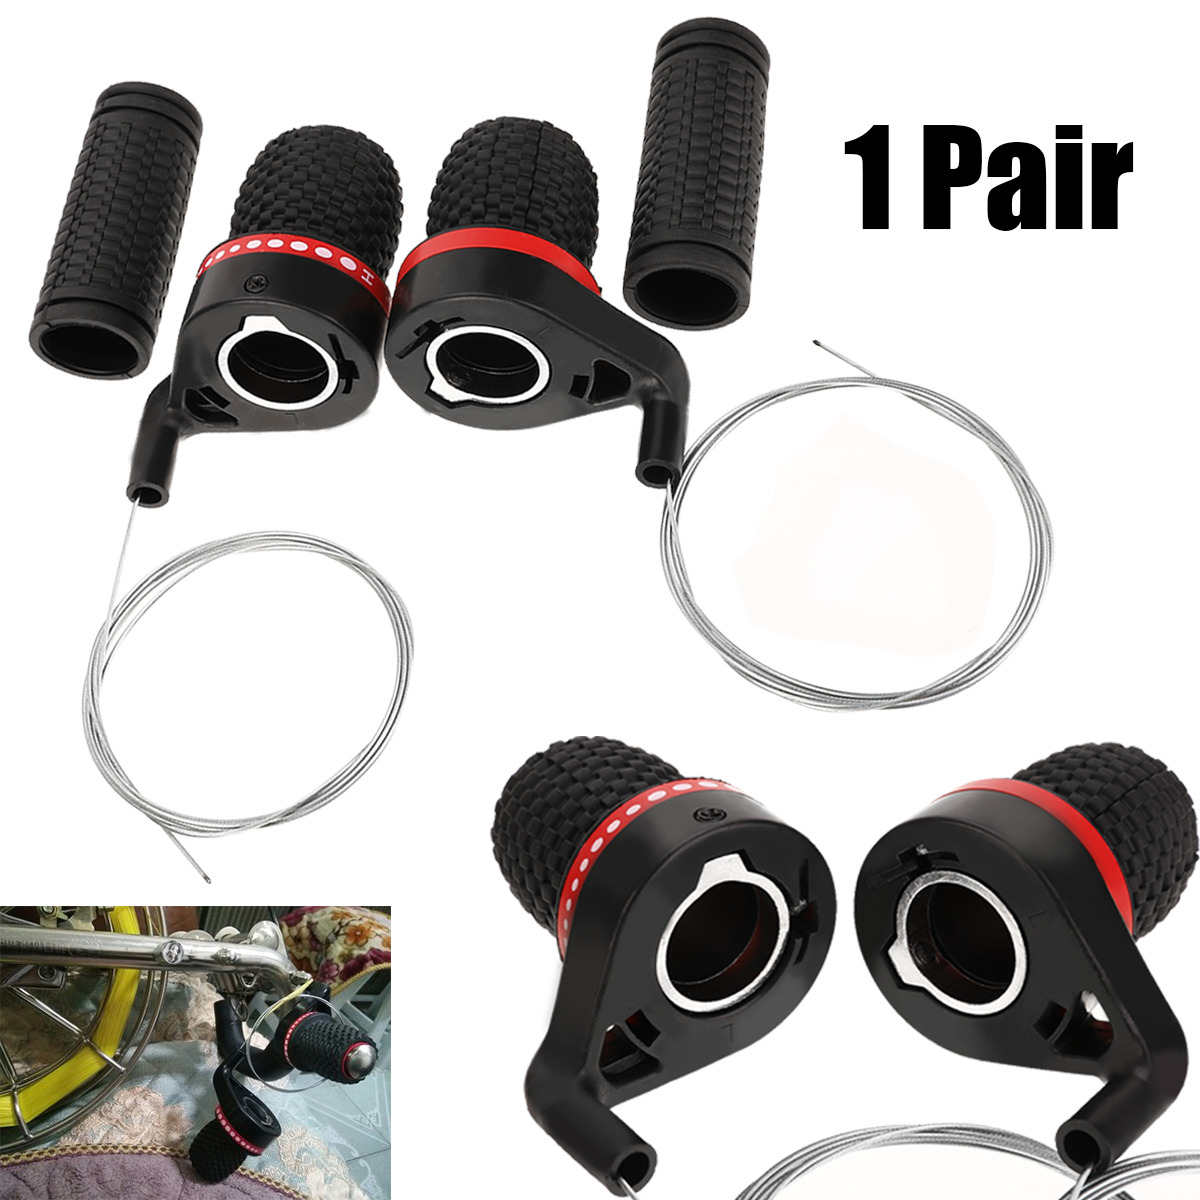 New 1 Pair Bicycle Gears Mountain Bike Bicycle Speed Twist Gear Shifter And Turning Handles Rubber Grips Cycle Bike Parts